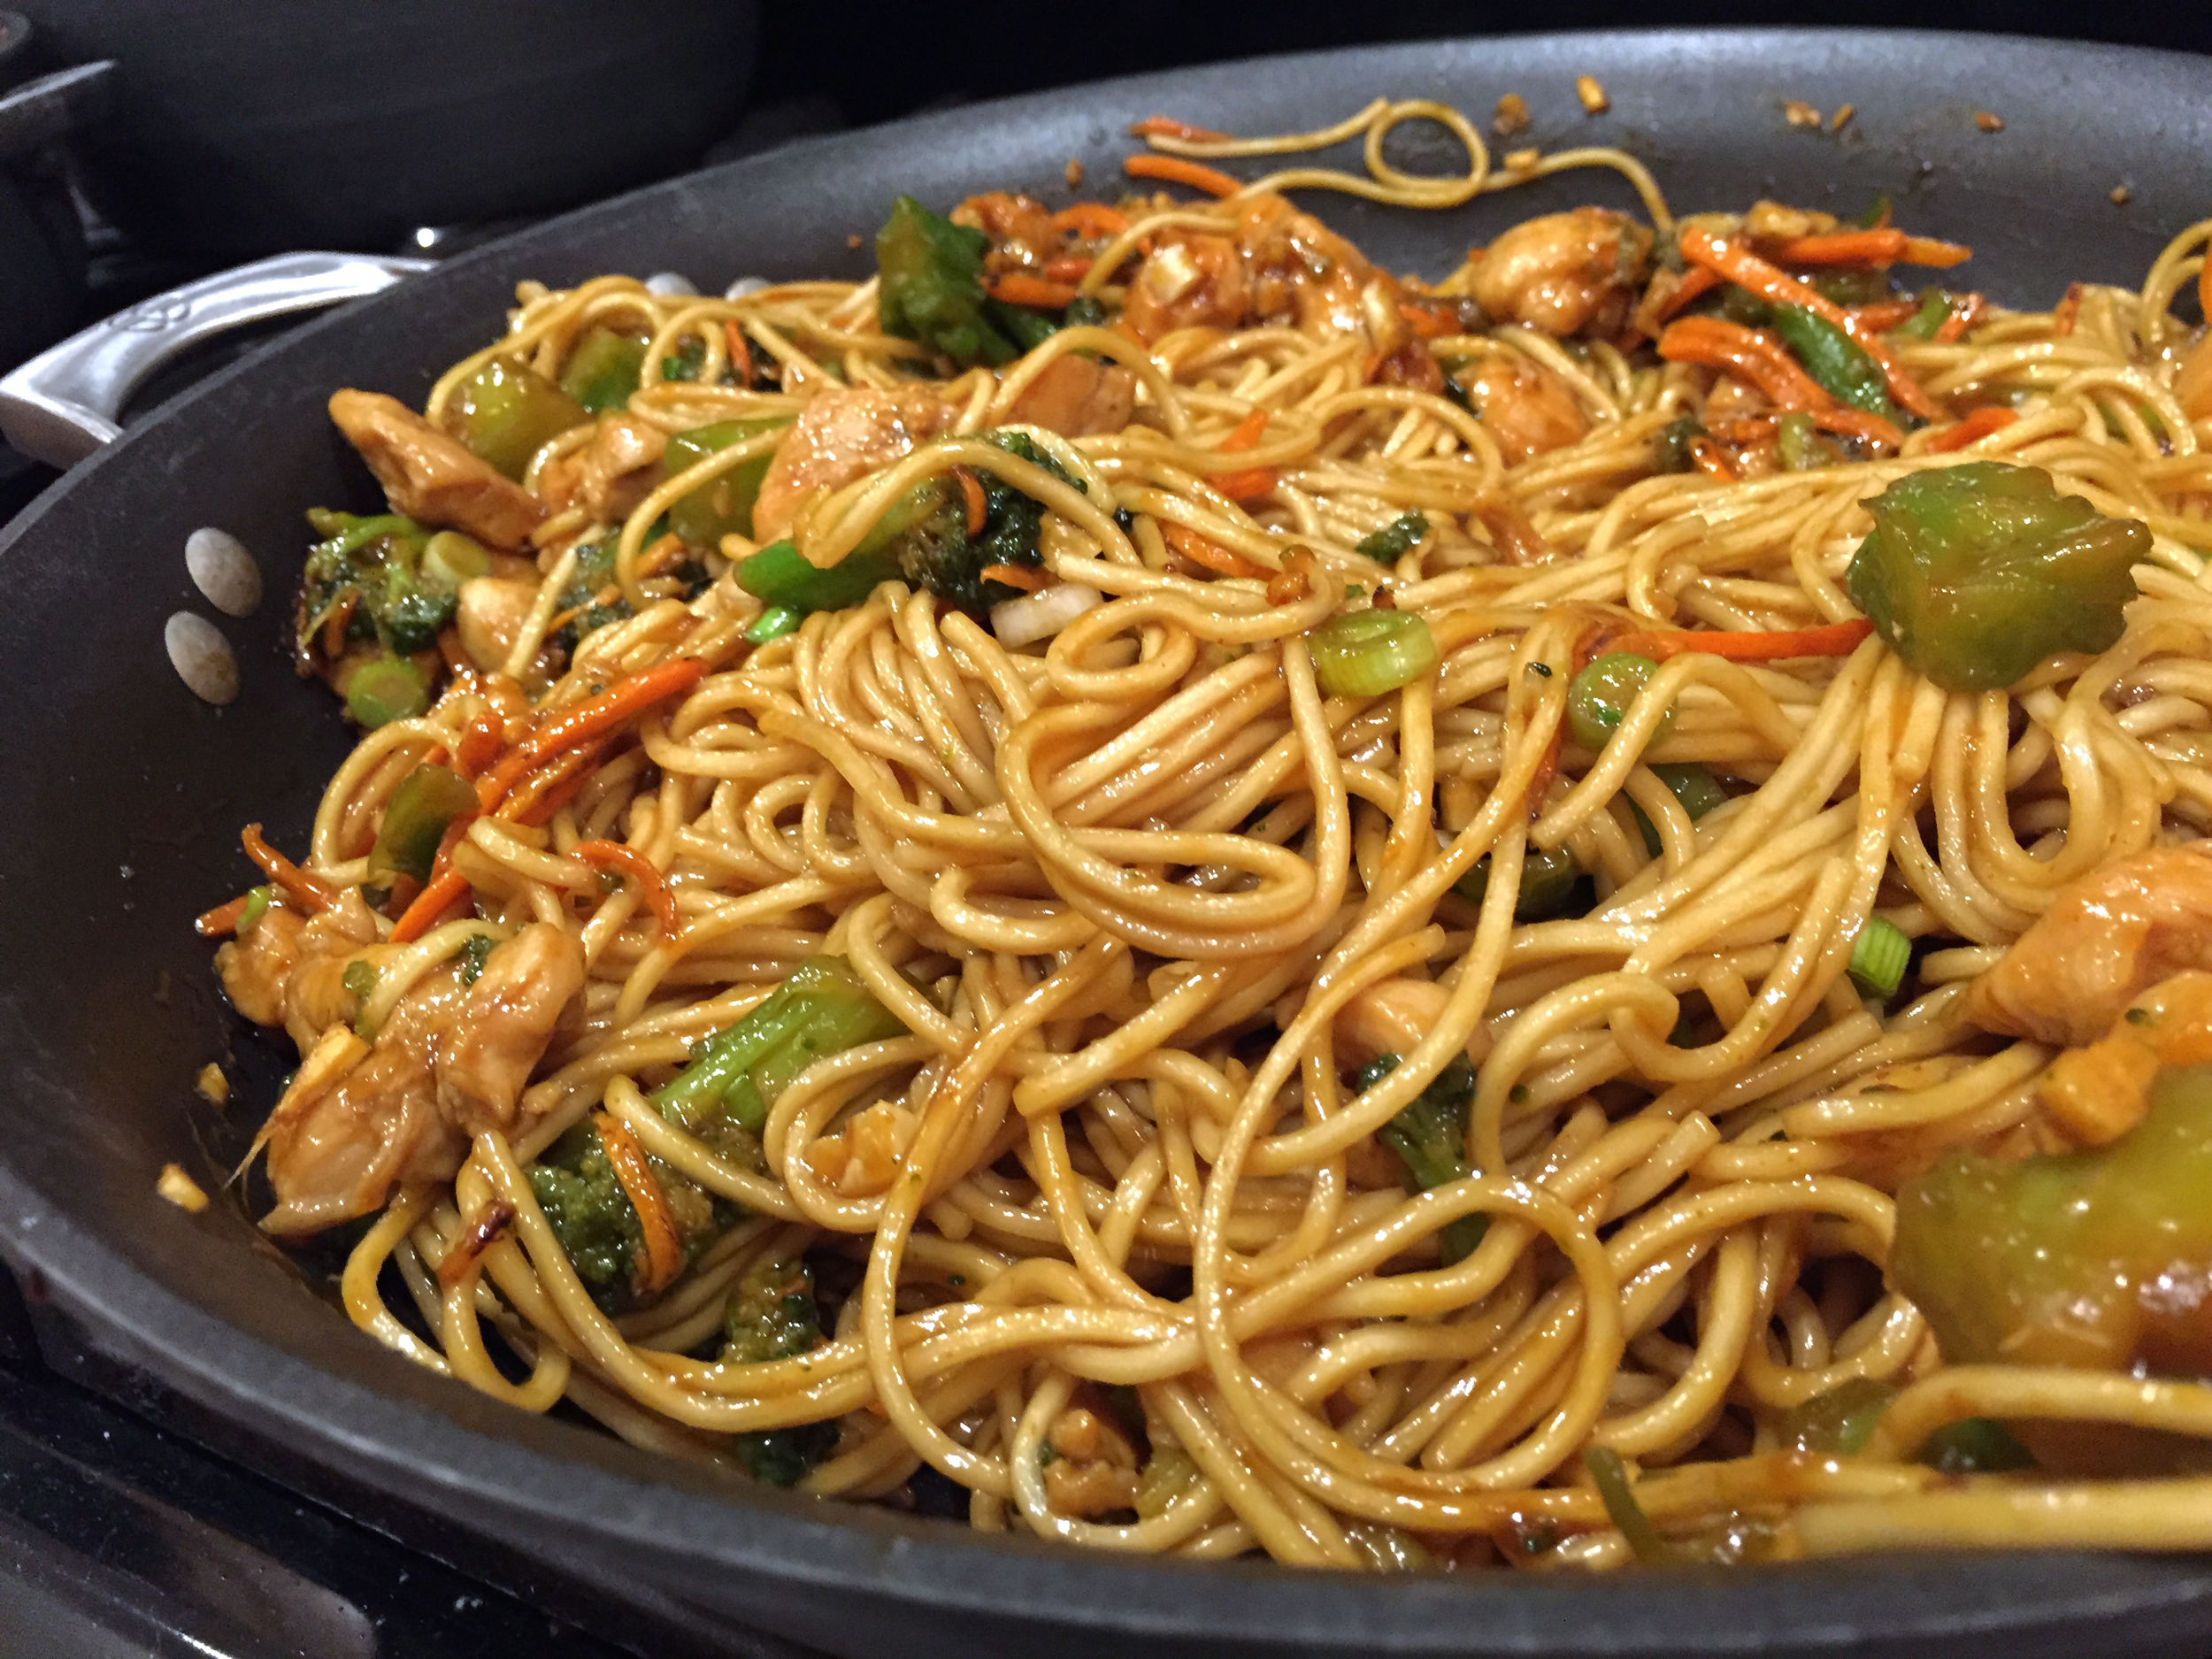 Sriracha Chicken and Broccoli lo-mein noodle dish